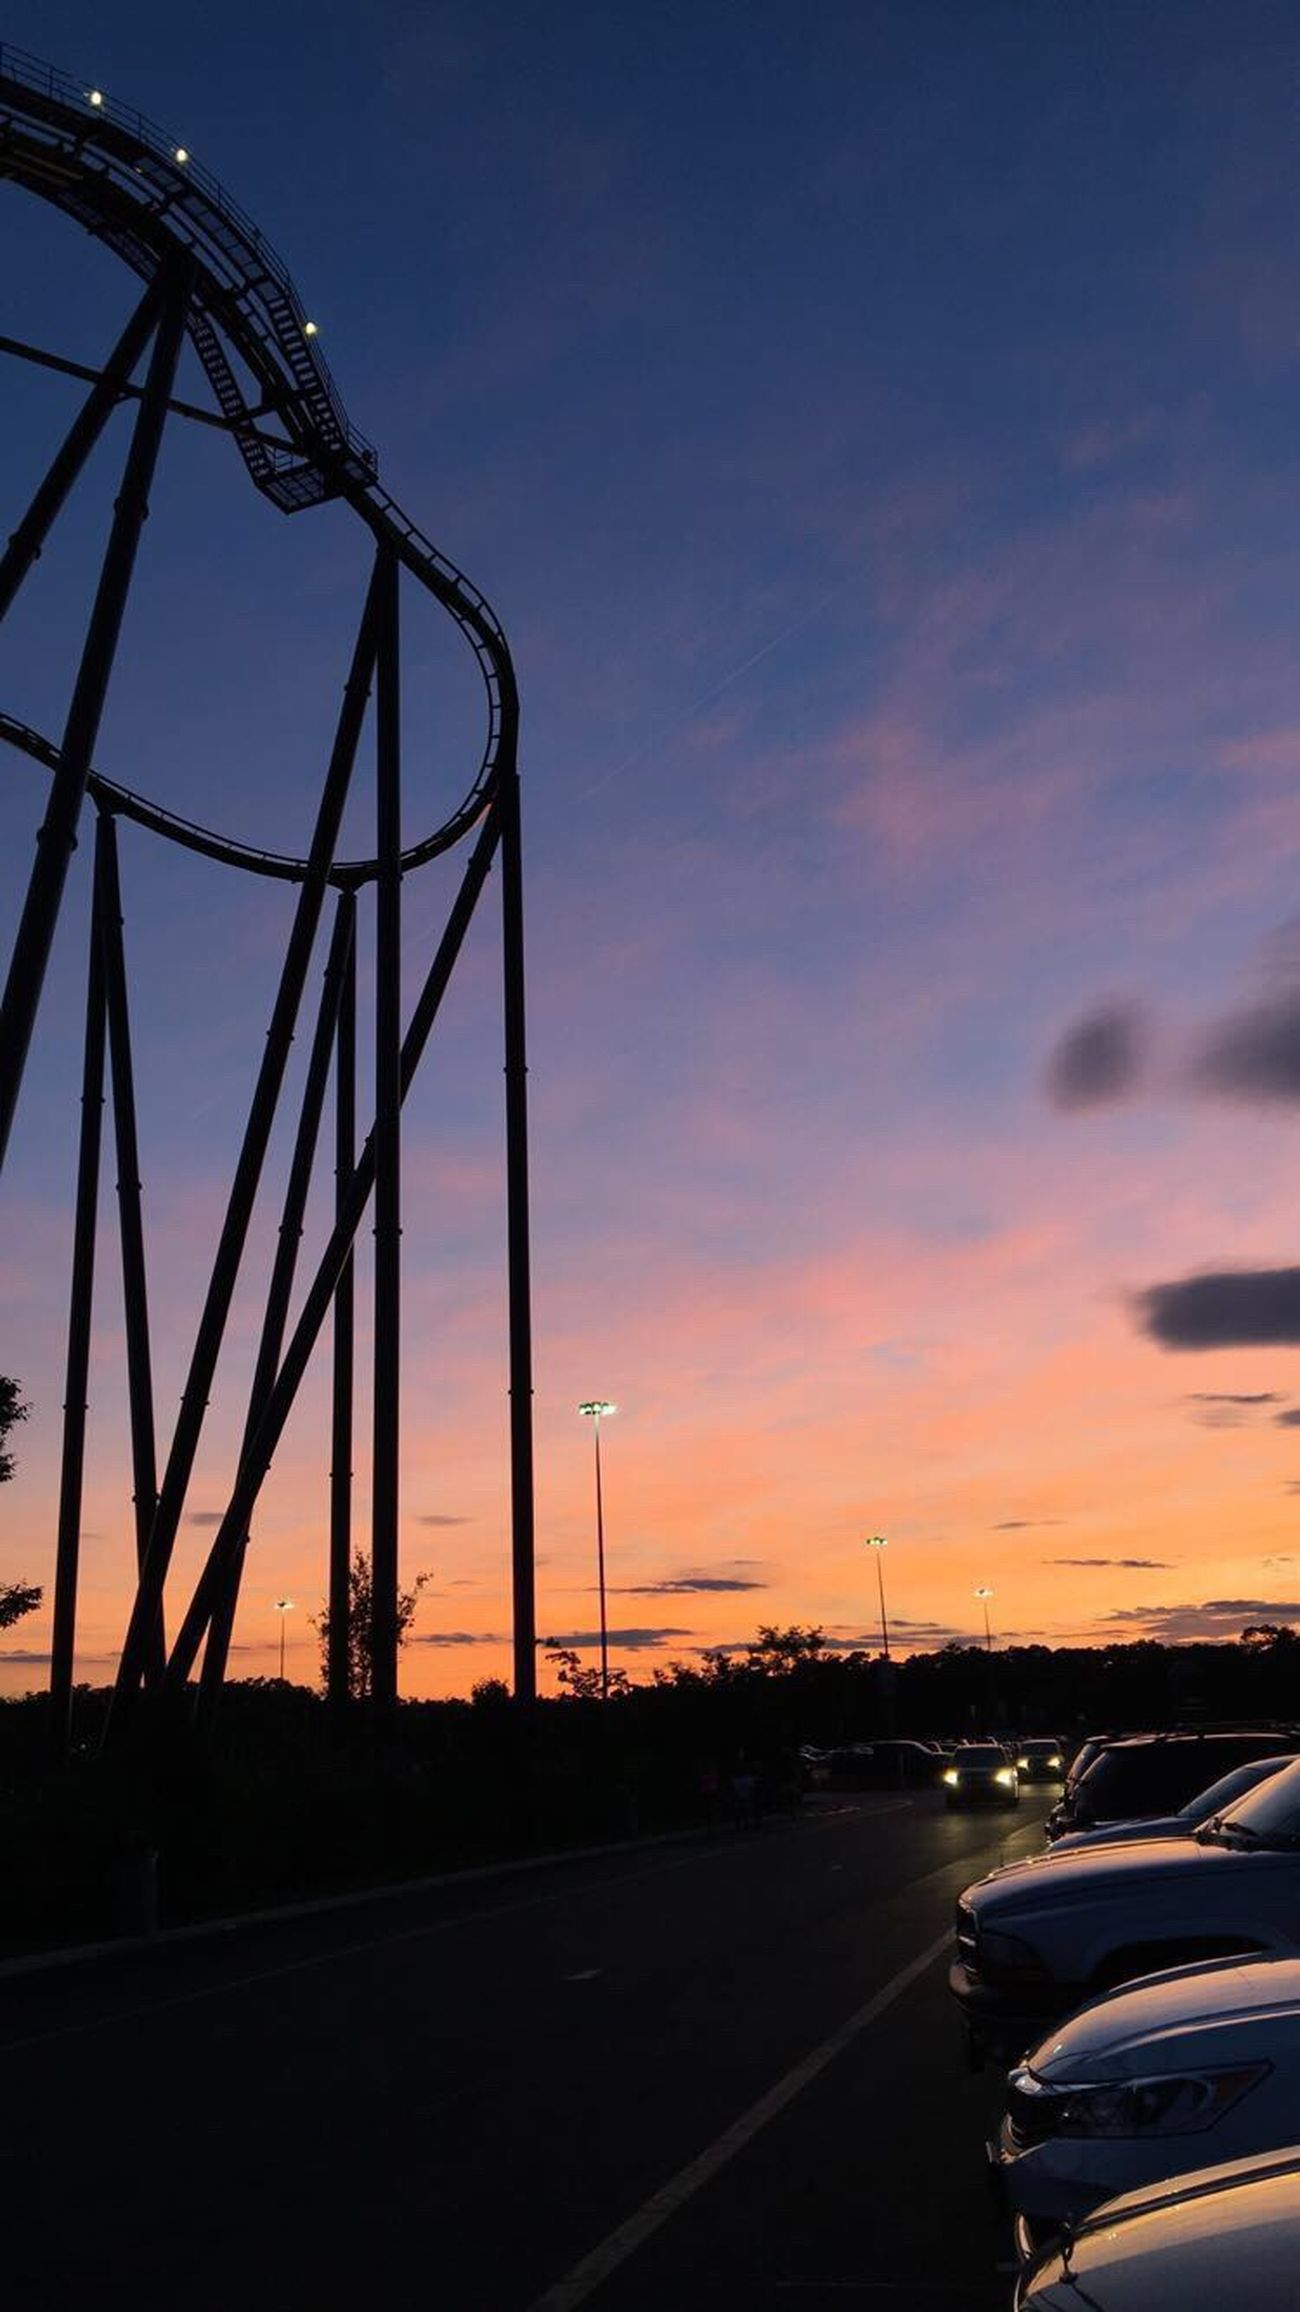 Sunset Sky Roller Coaster EyeEmNewHere Nature Outdoors Six Flags Pretty Parking Lot Cars Goals Mybest MyFavorite  Myfavoriteplace Myfavoritephoto